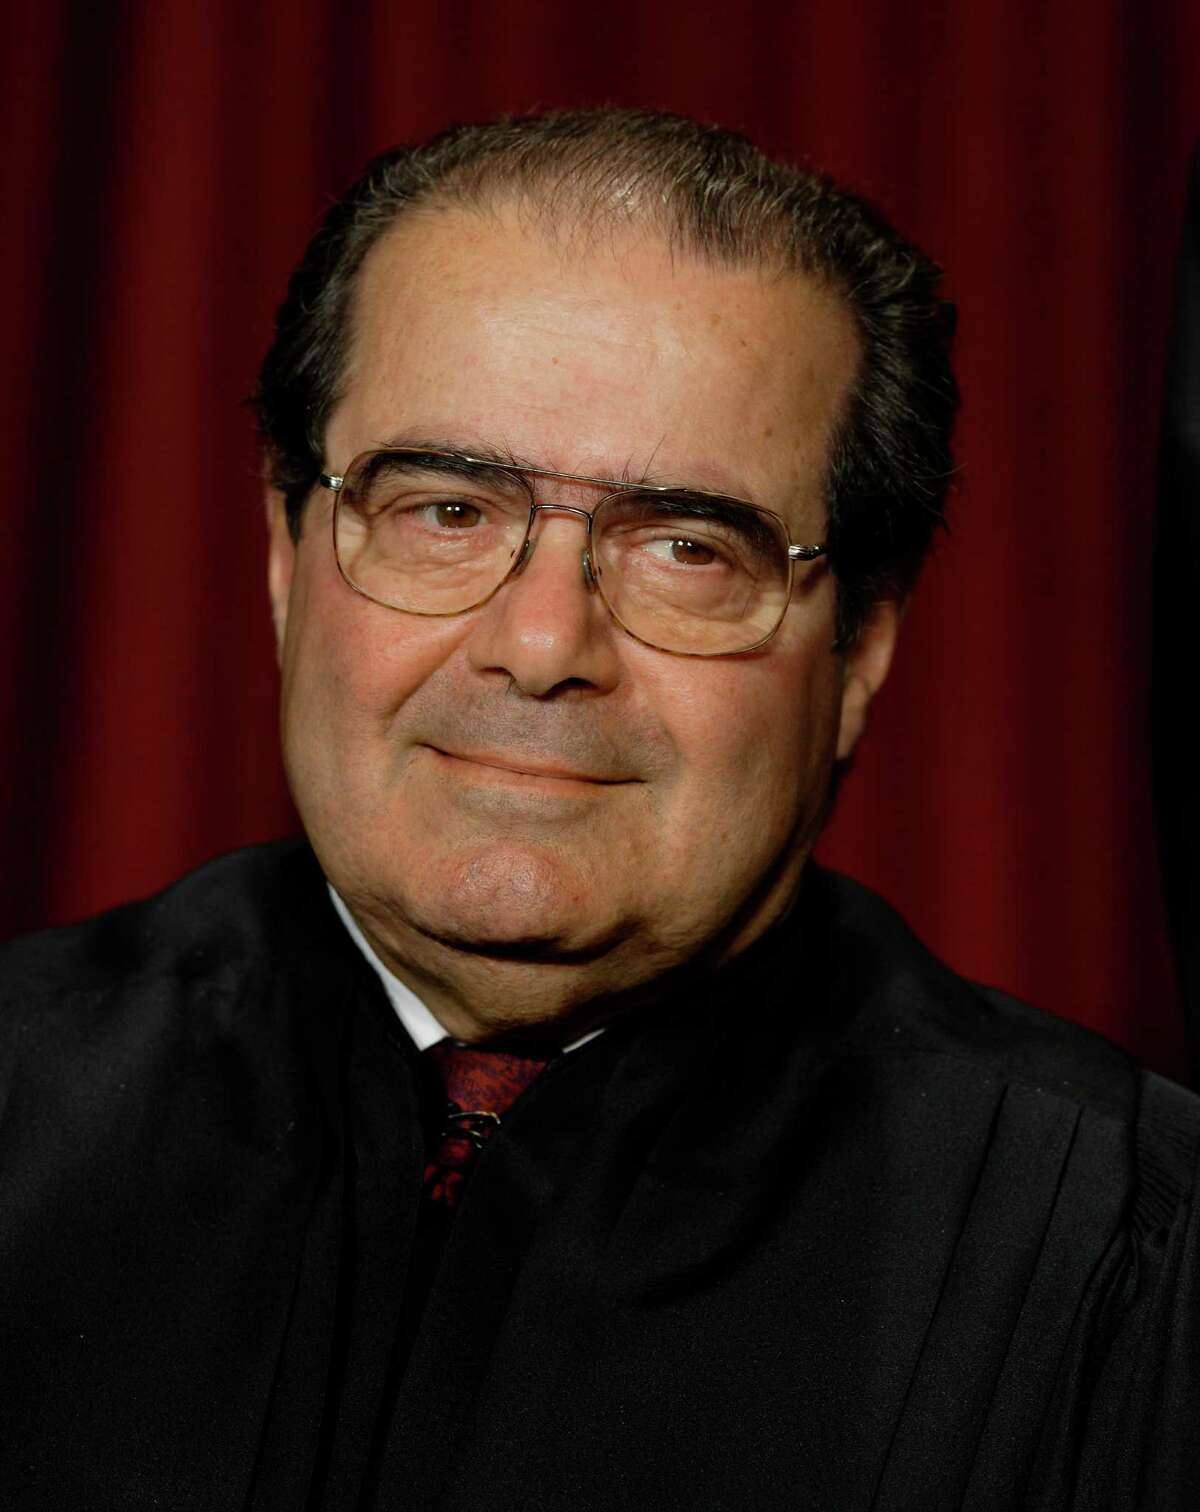 A shifting pillow Scalia was found in his bed with his head resting on three pillows, but at some point, the top pillow shifted under his head, which caused part of it to slide down and cover his face.